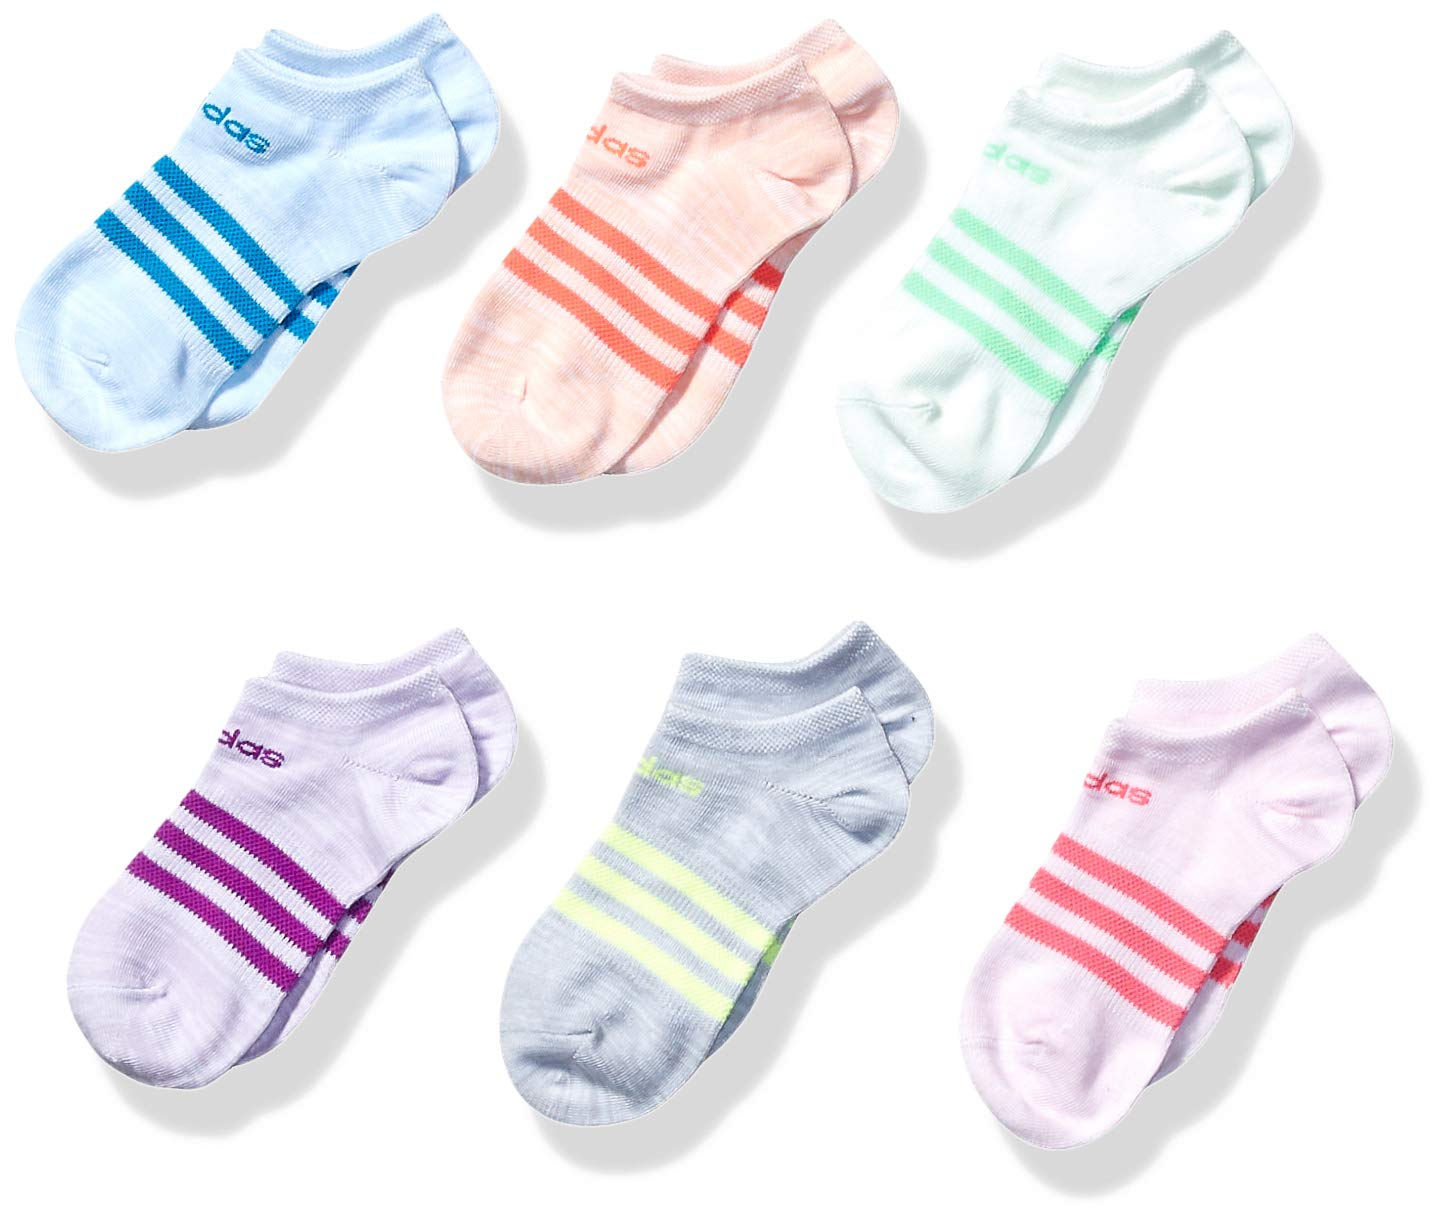 adidas Youth Kids-Girl's Superlite No Show Socks (6 Pair), Glow Blue - White Space Dye/Solar Blue/Glow Pink - Whi, Small, (Shoe Size 9C-1Y) by adidas